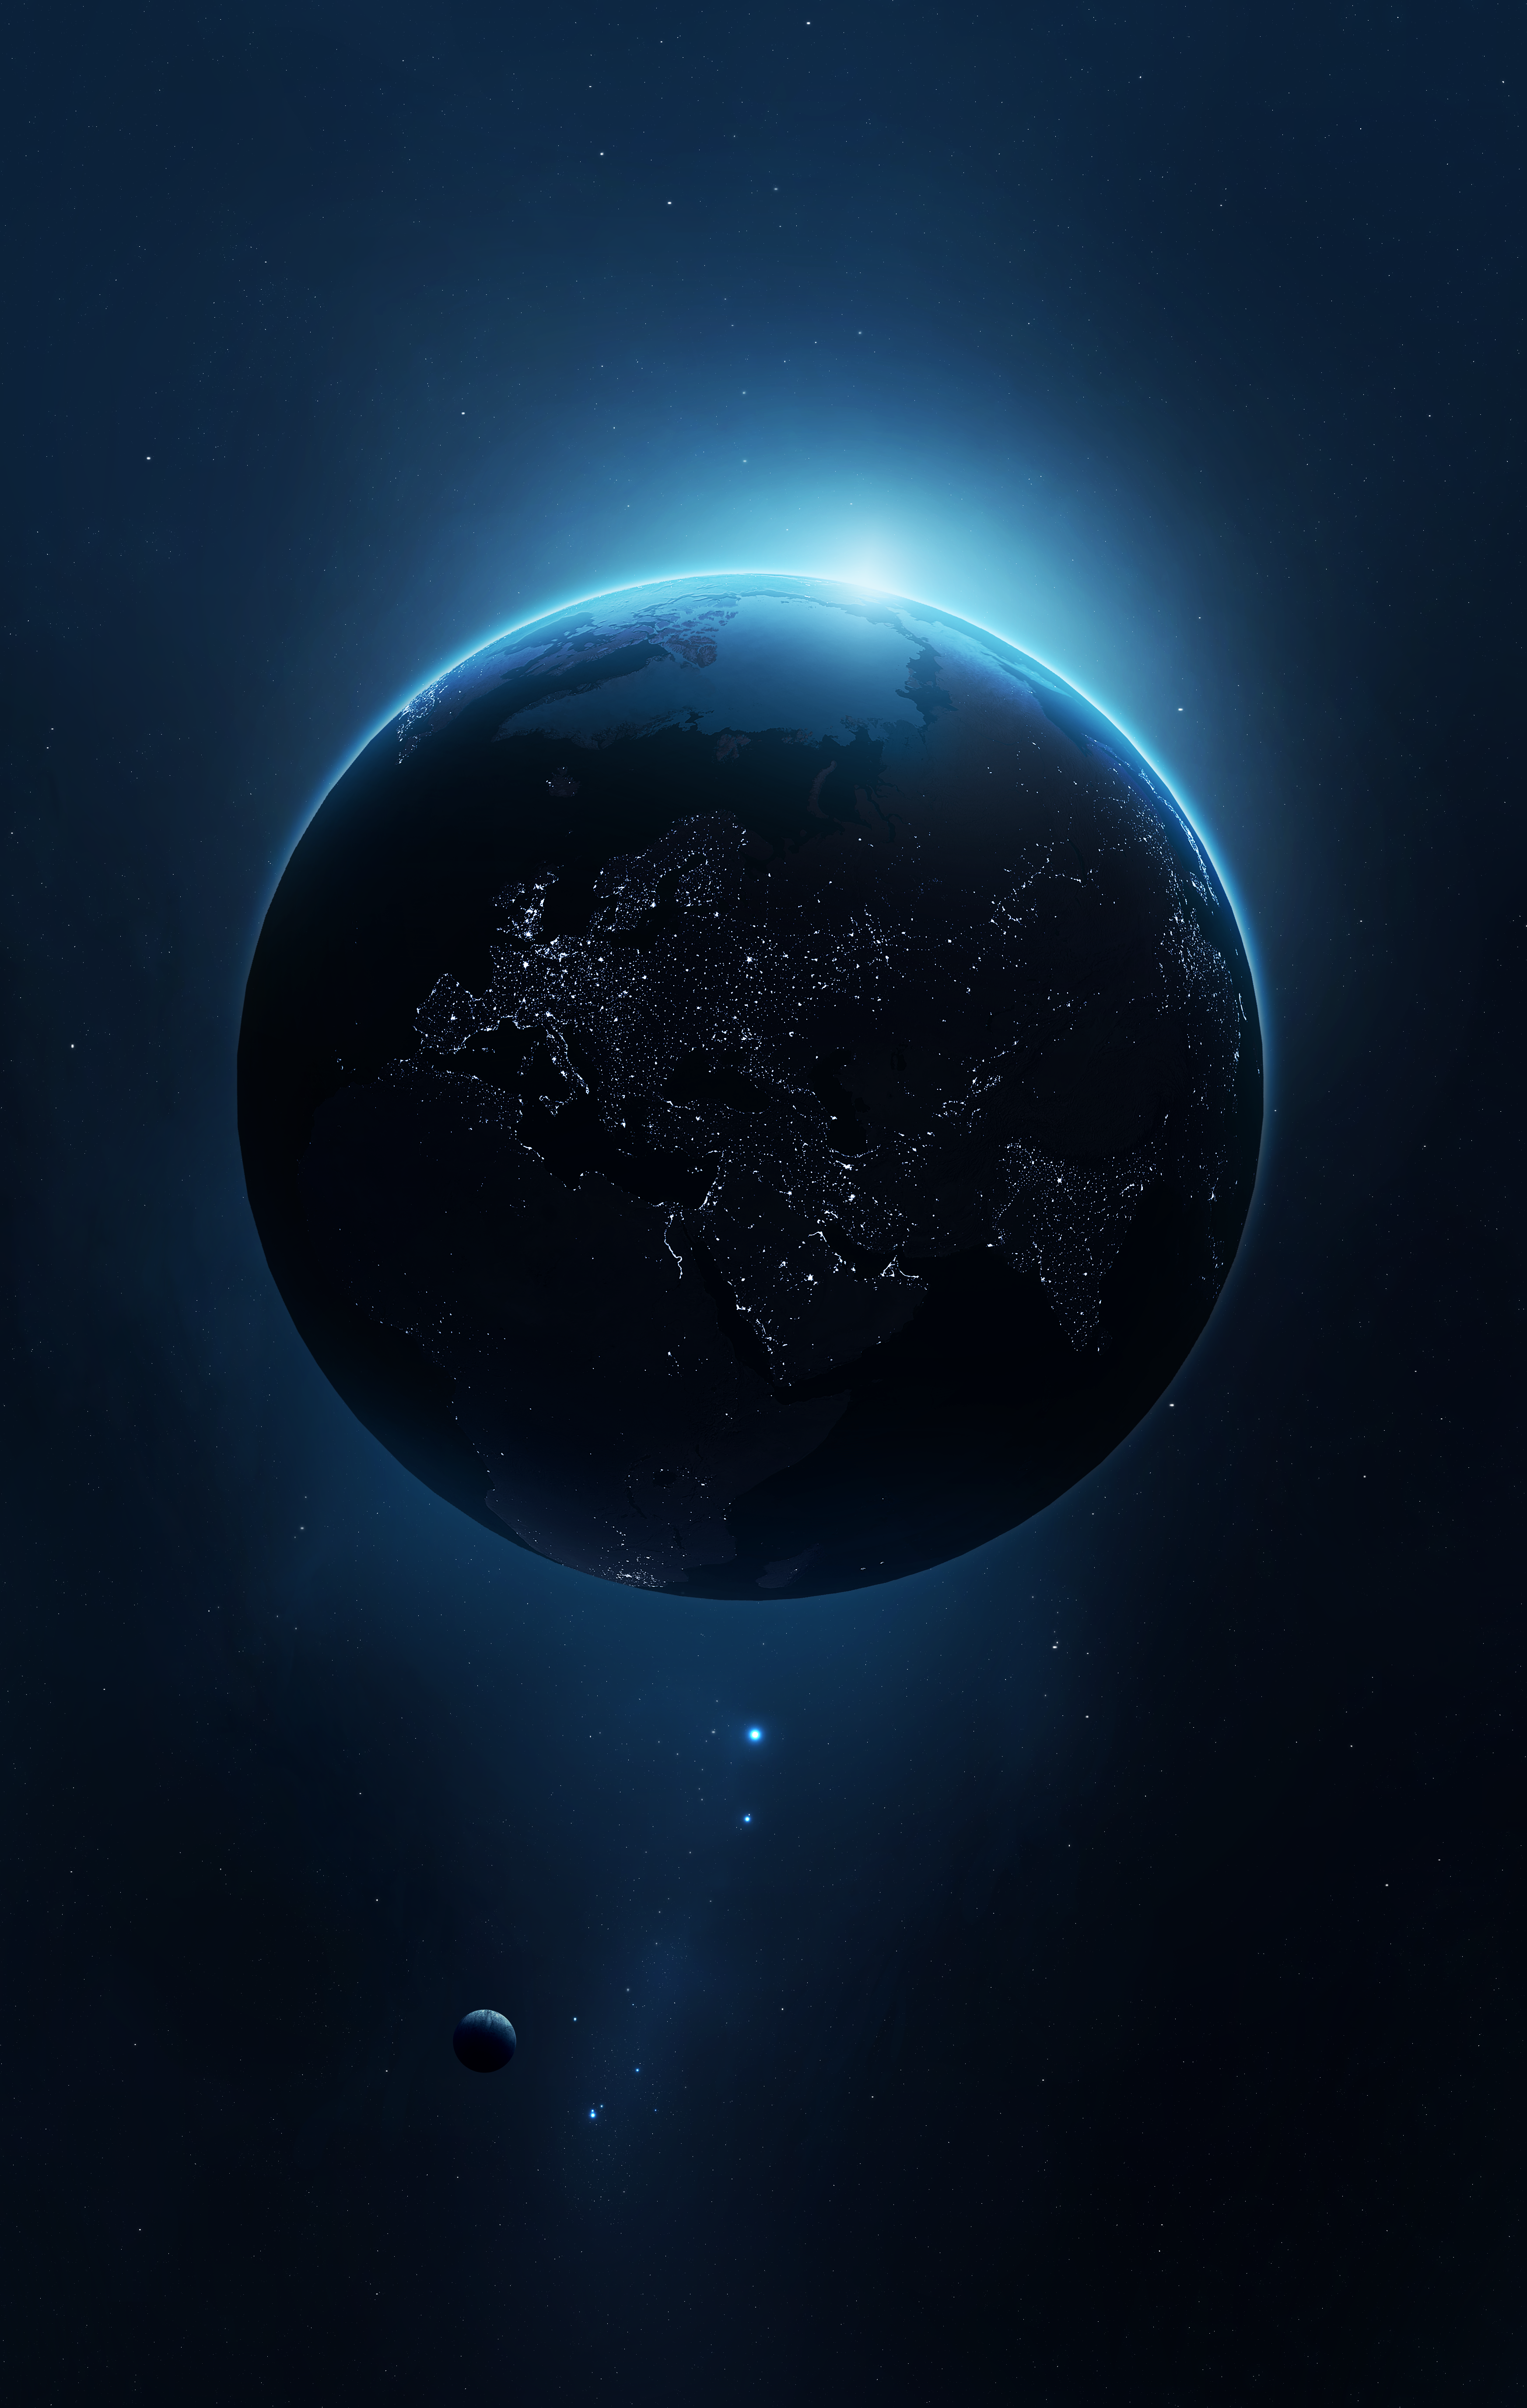 General 3490x5504 Space Universe Planet Earth Space Art Digital Art Wallpaper Earth Earth From Space Space Art